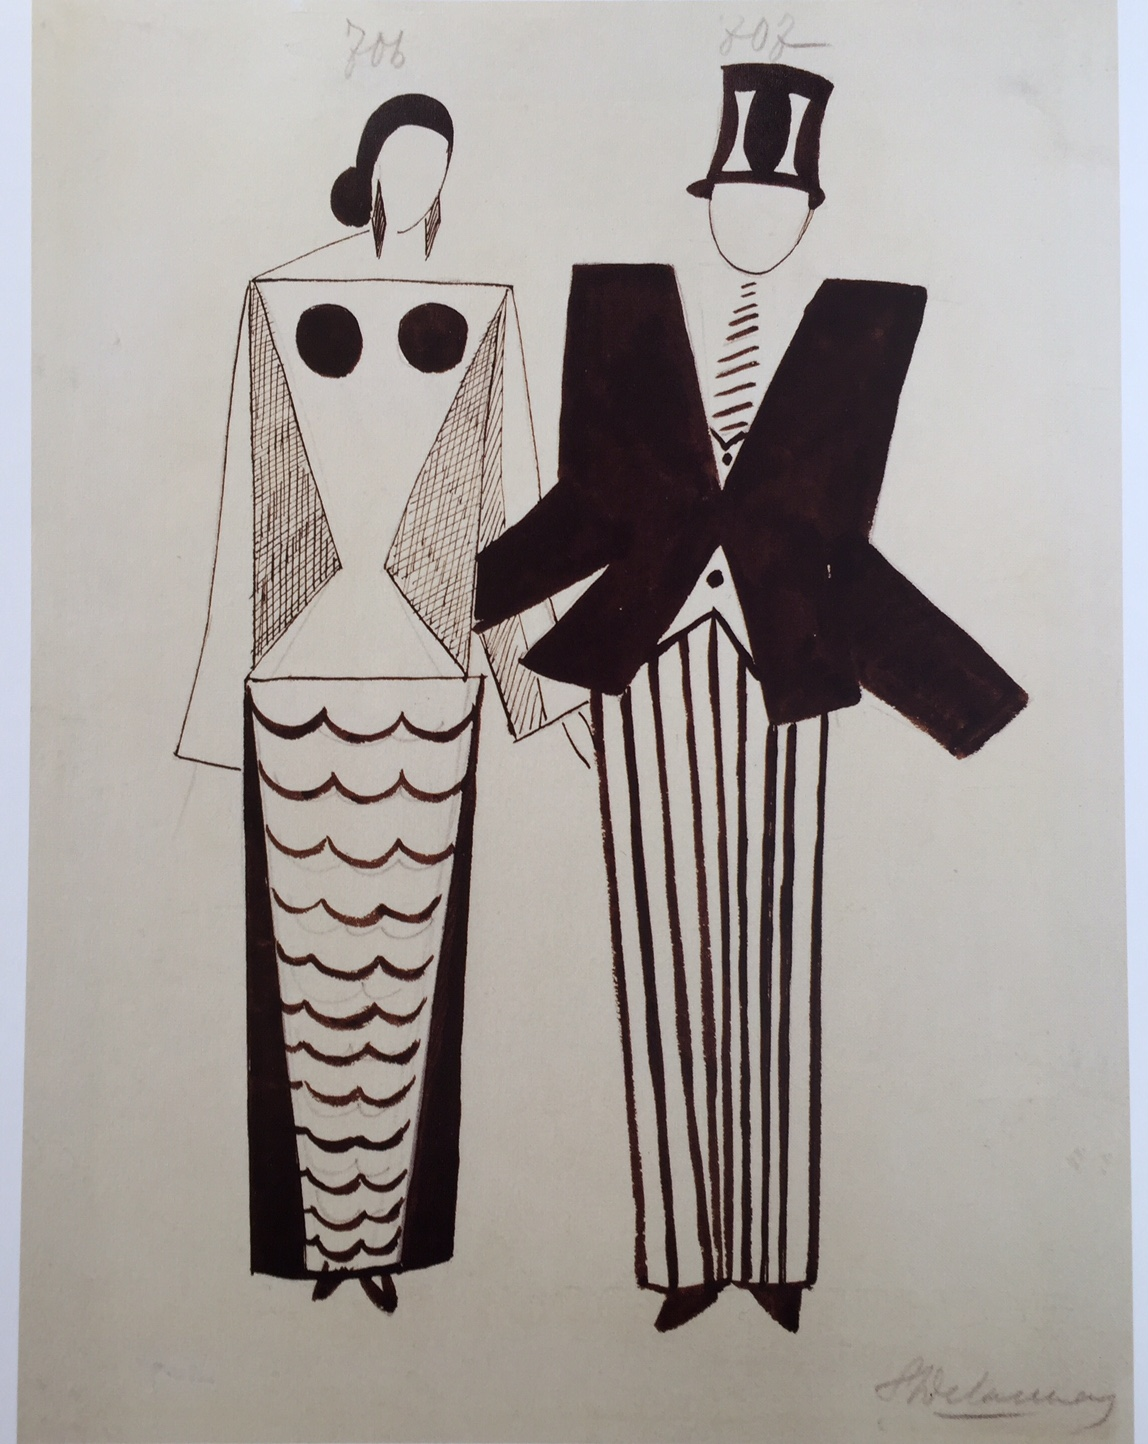 "Sonia Delaunay Terk, Costume Designs for Miss Mouth and Mr Eye, for Tristan Tzara show ""Le Coeur à Gaz"", 1923"